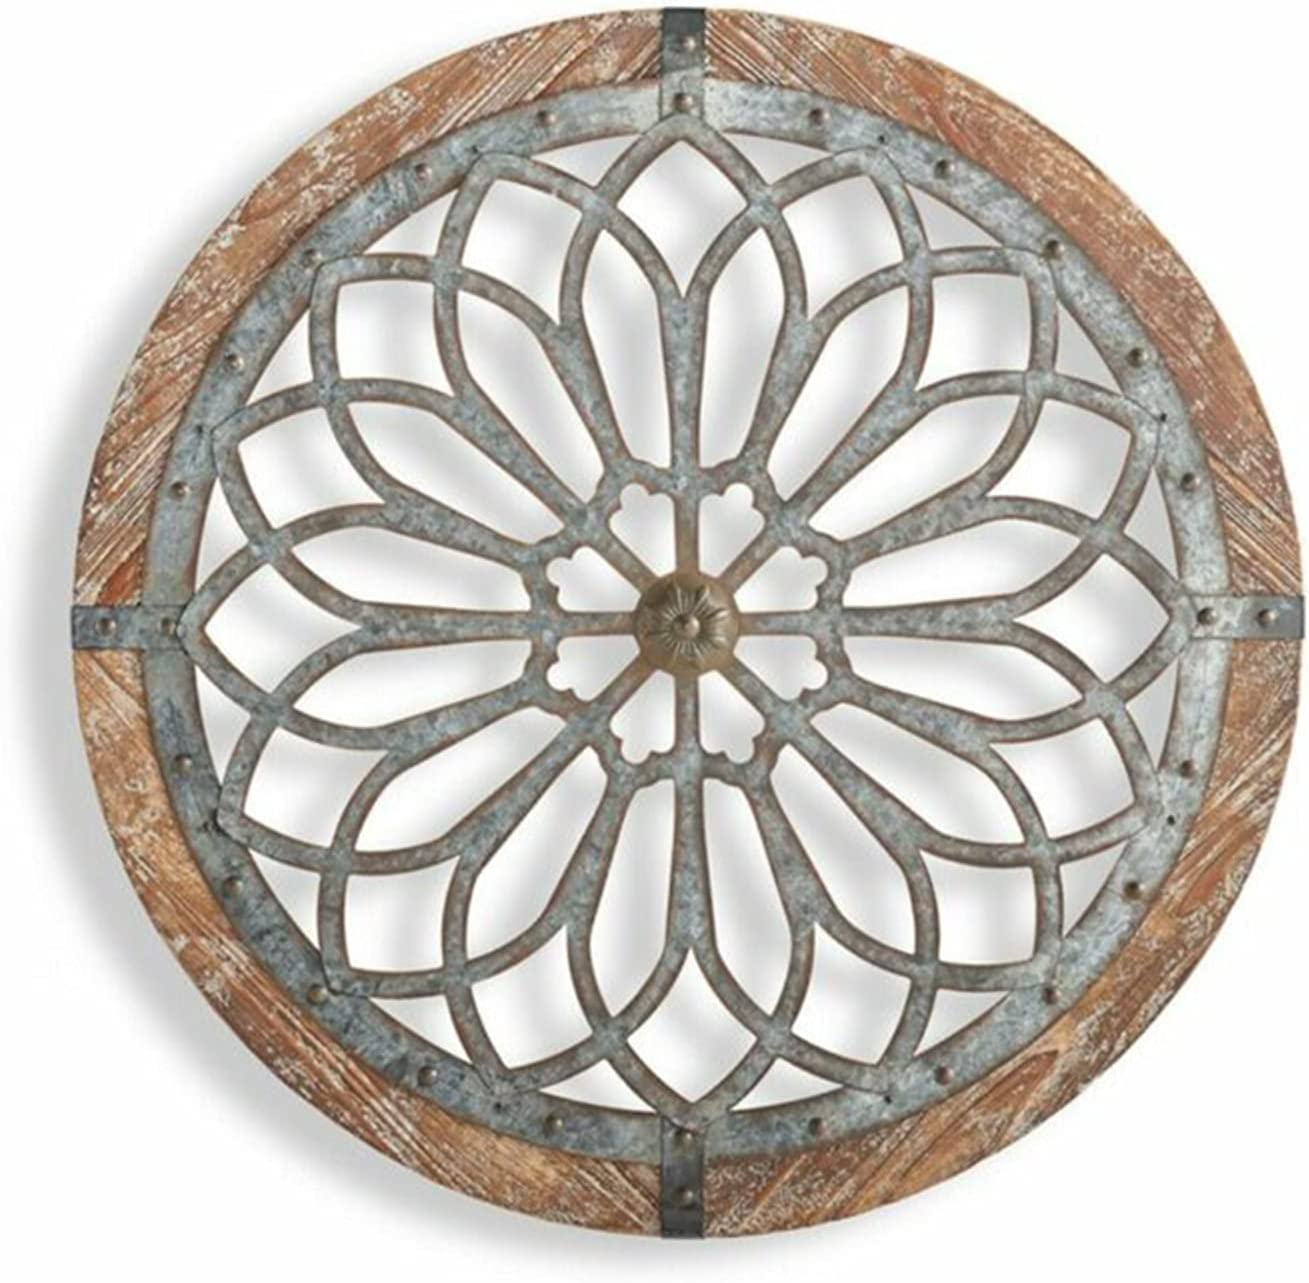 Aslion Flower Metal and Wood Art Deco Wall Decor, Heritage Round Wall Art Wooden Hanging Ornament Home Resturant Decoration